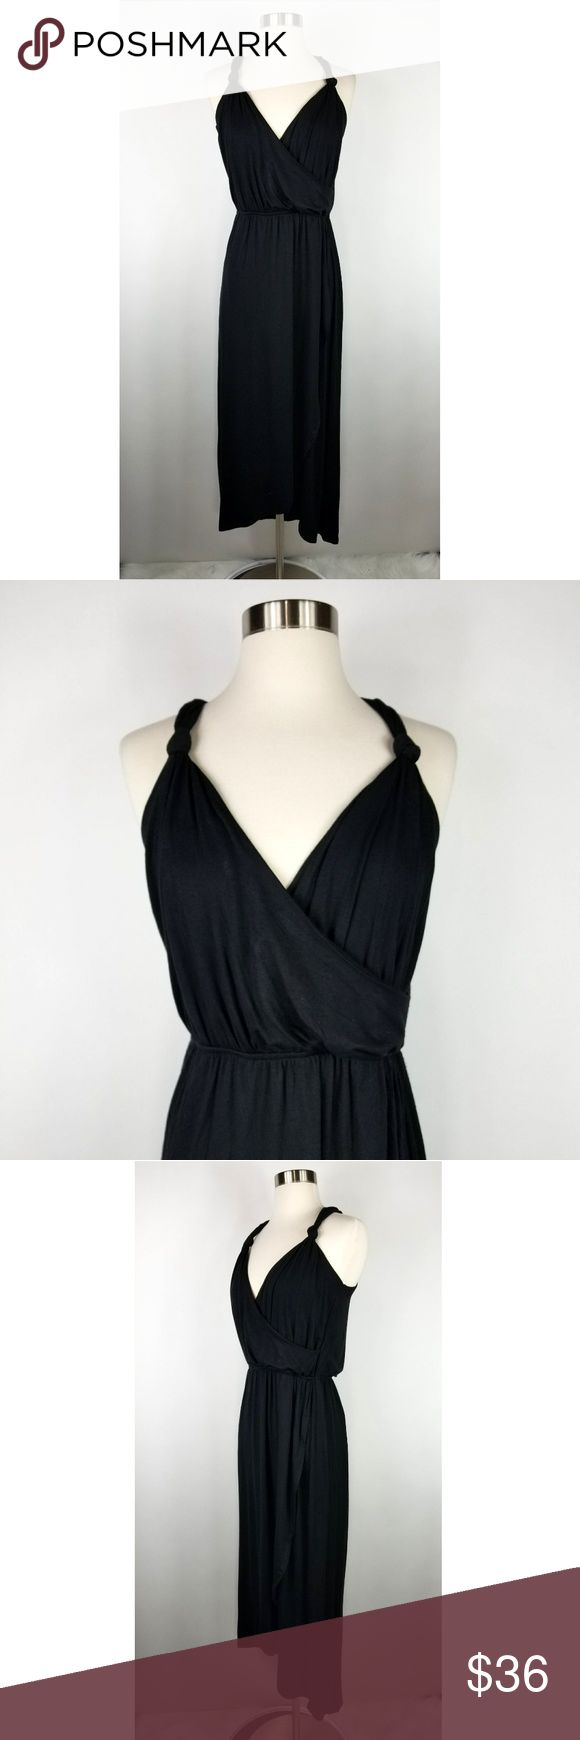 """The Vanity Room Black Knot Strap Jersey Dress NEW The Vanity Room surplice knot strap jersey knit dress. Size M. Made of a stretchy rayon spandex blend. New with tags. (Sku:BN-B)  18"""" armpit to armpit  12.5"""" across at waist unstretched; 16"""" across when stretched 19"""" across at hip 45"""" long in front; 57"""" long in back The Vanity Room Dresses"""